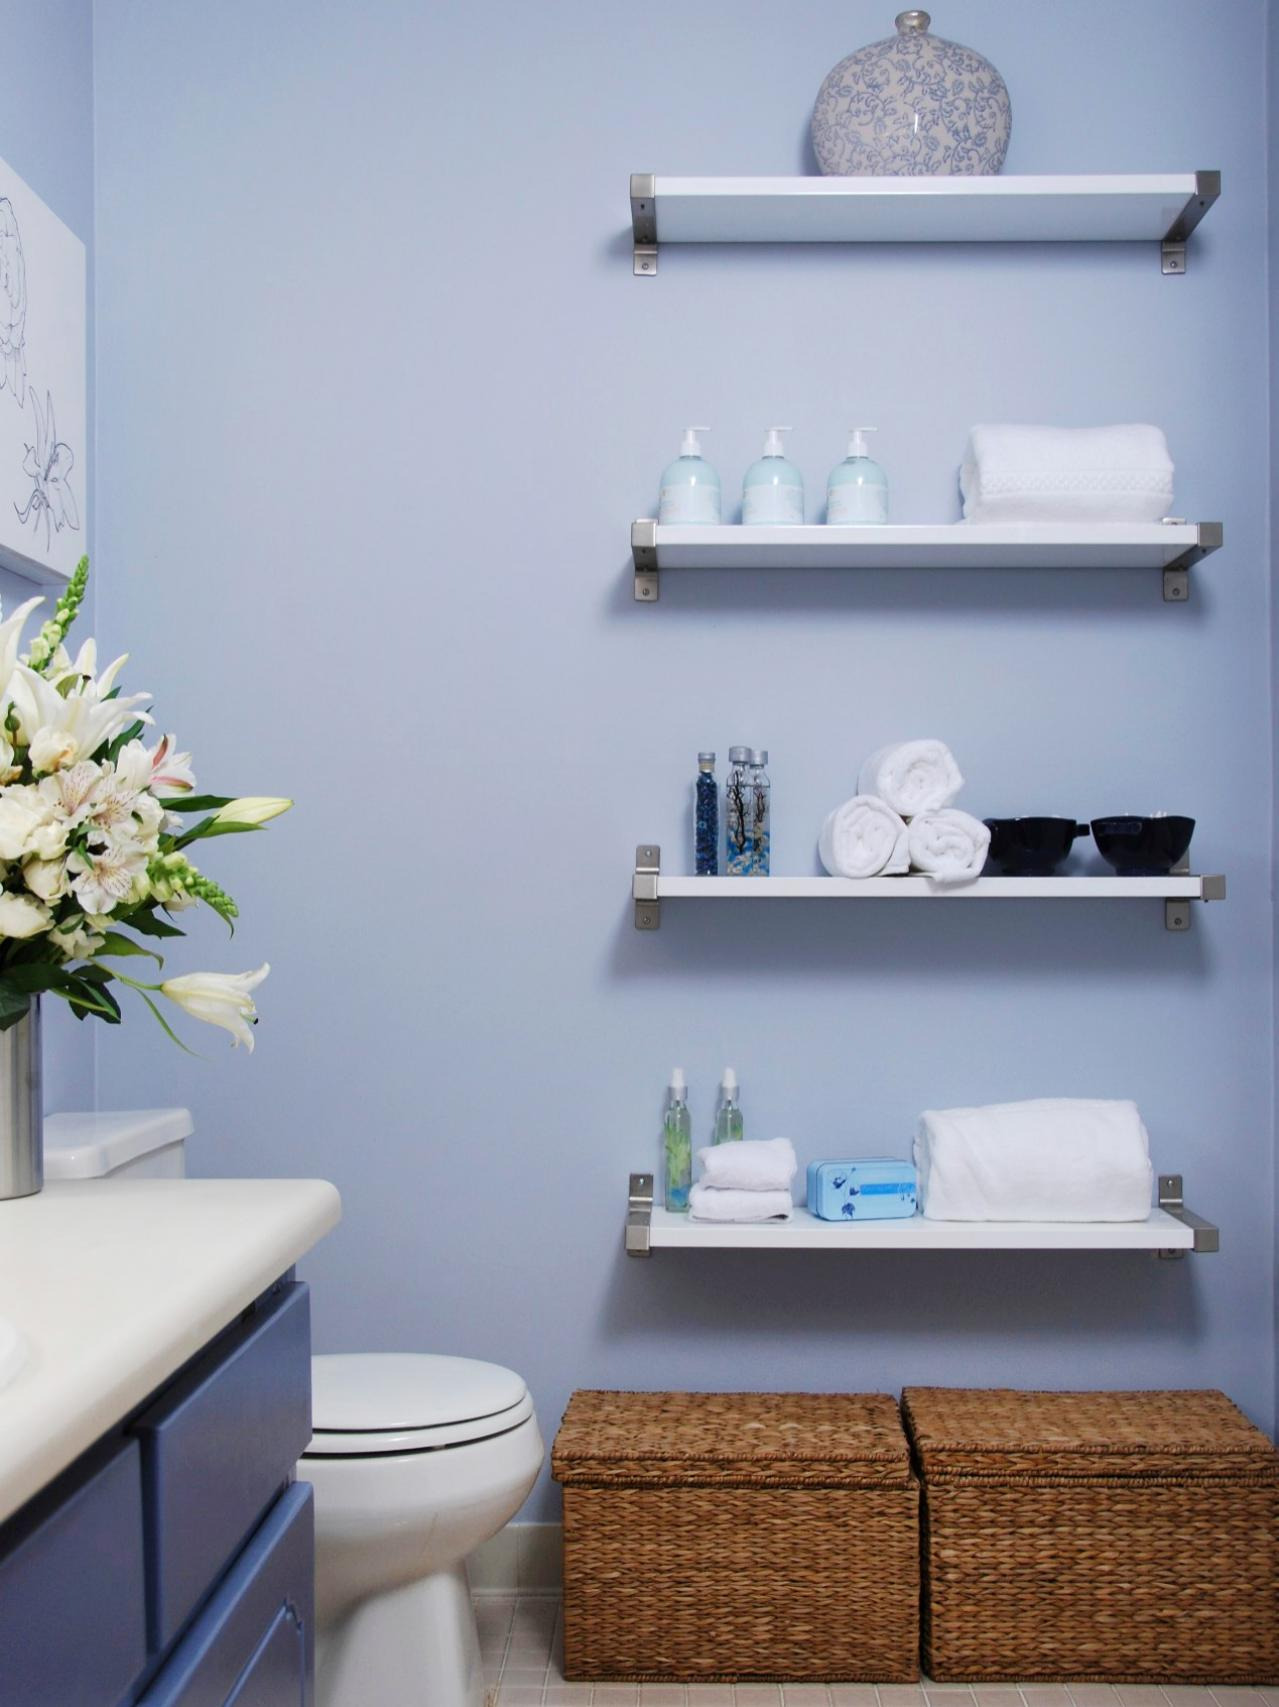 Decorative Wall Shelves for Bathroom Beautiful Shelves with Wall Mount Tv Stand Floating Ideas Decorative